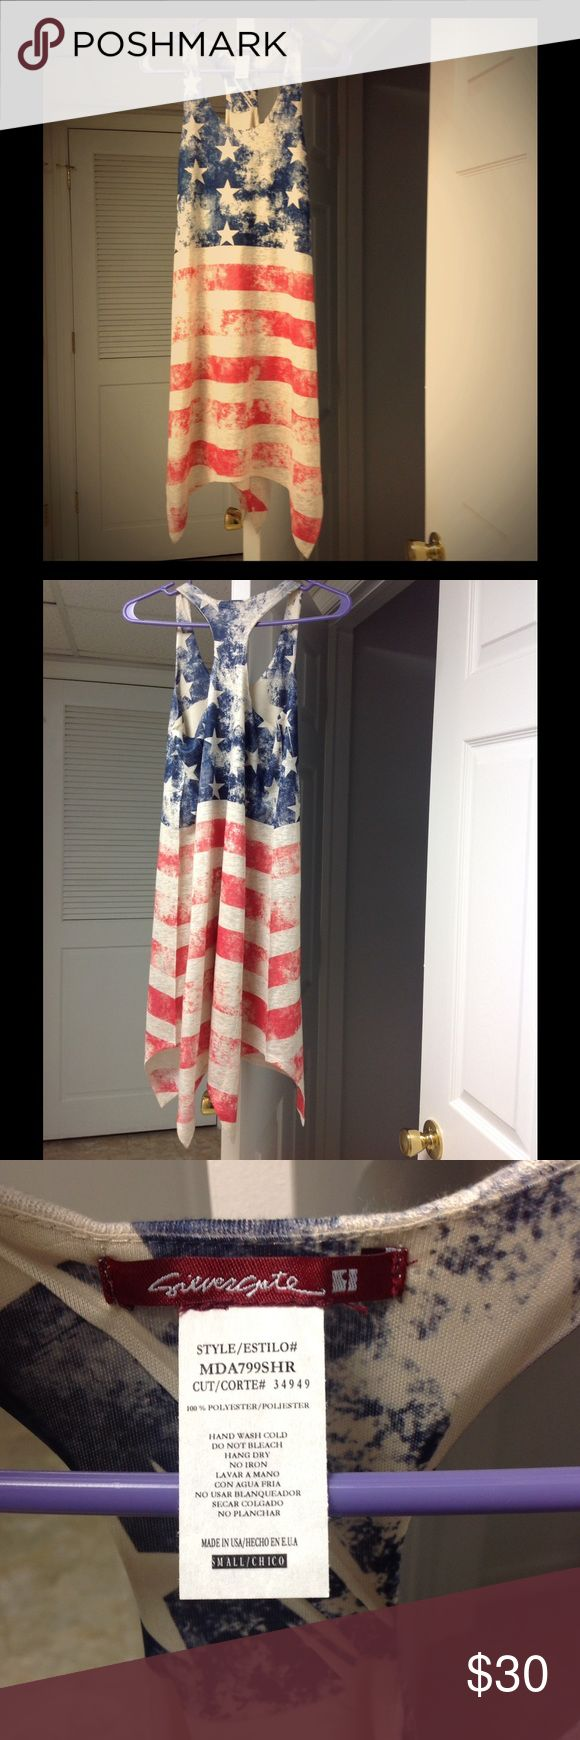 NWOT Patriotic dress from The Pink Lily Boutique Brand new, never worn. Flag pattern casual sundress with racerback. Size small. Great for summer holiday picnics or concerts. Purchased online from The Pink Lily Boutique. (Silvergate-brand) the pink lily boutique  Dresses Midi